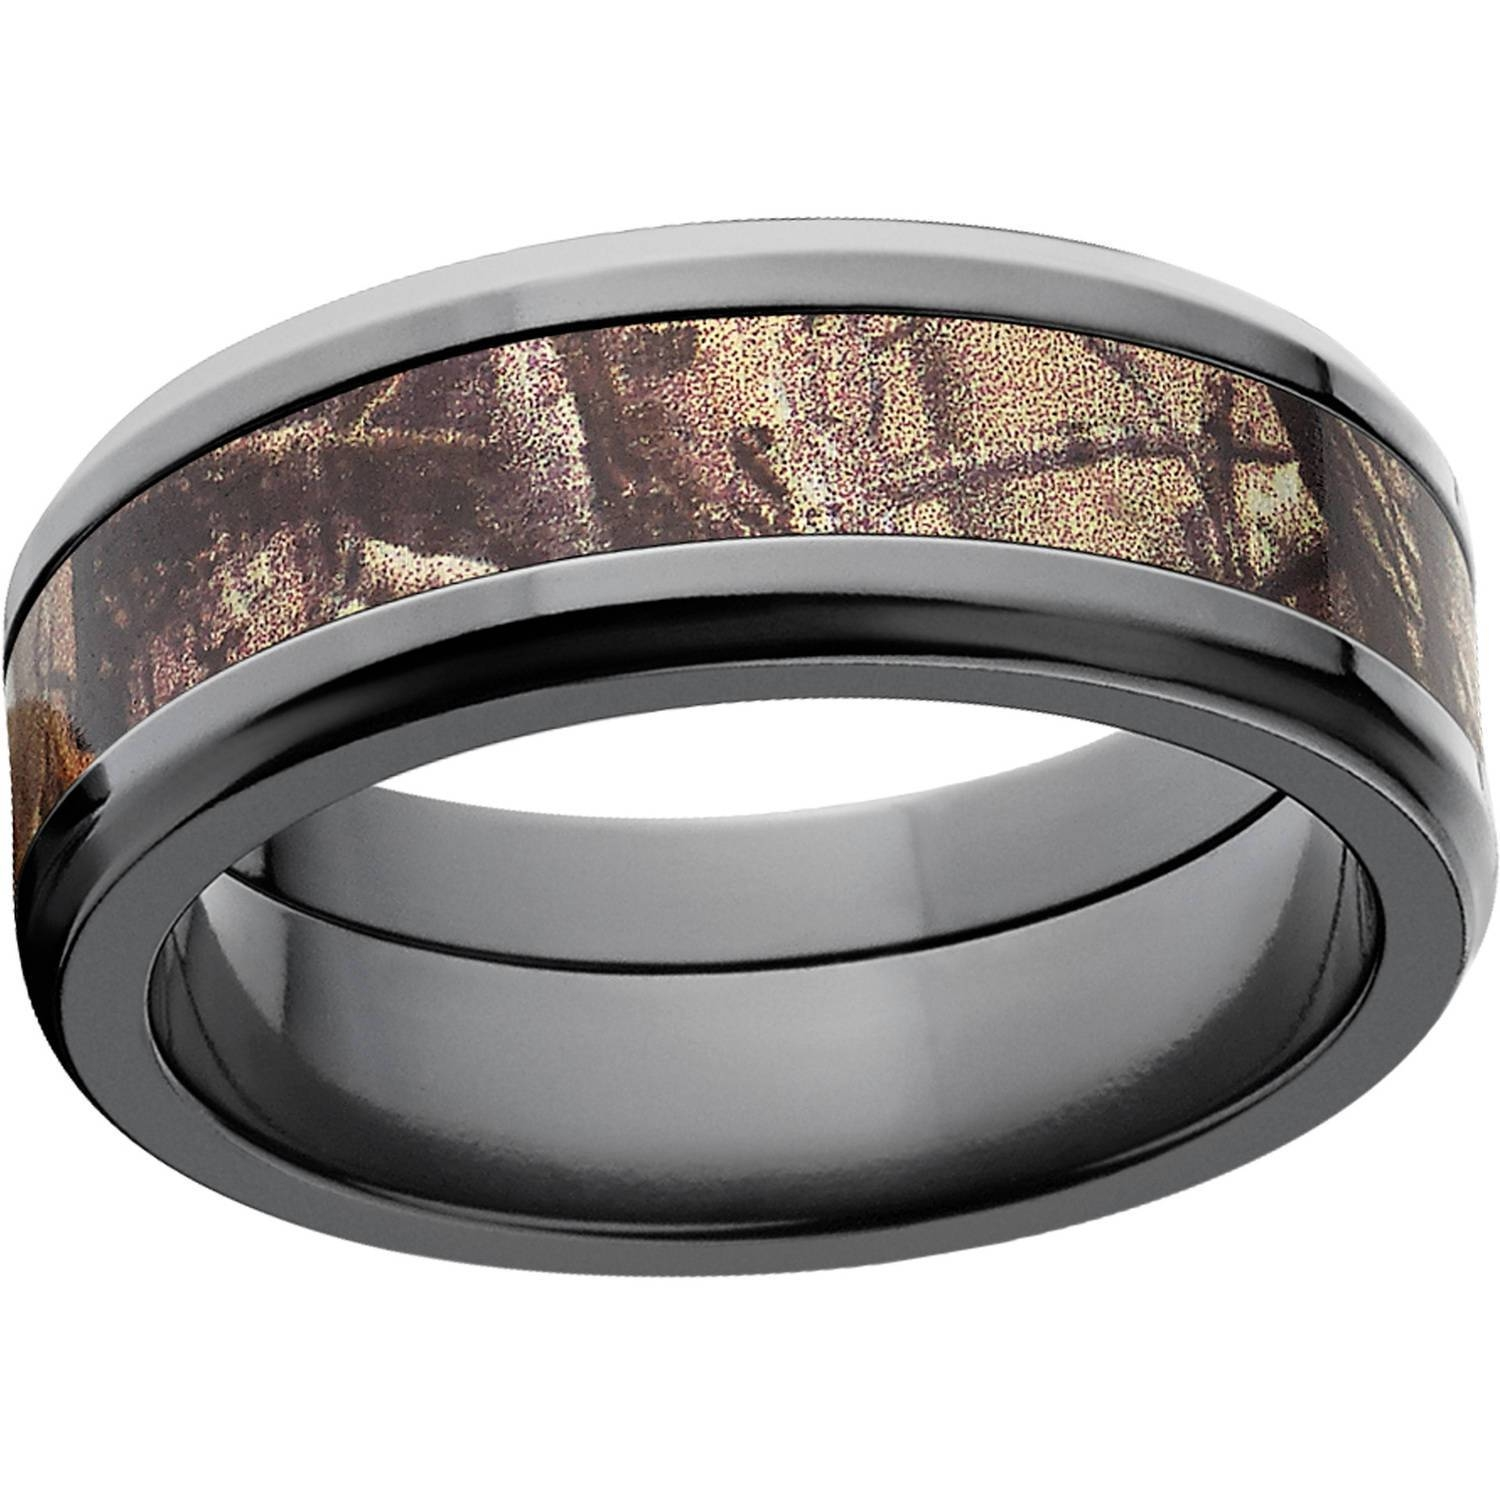 Realtree Ap Men's Camo 8mm Black Zirconium Wedding Band – Walmart With Regard To Mens Camouflage Wedding Bands (View 12 of 15)